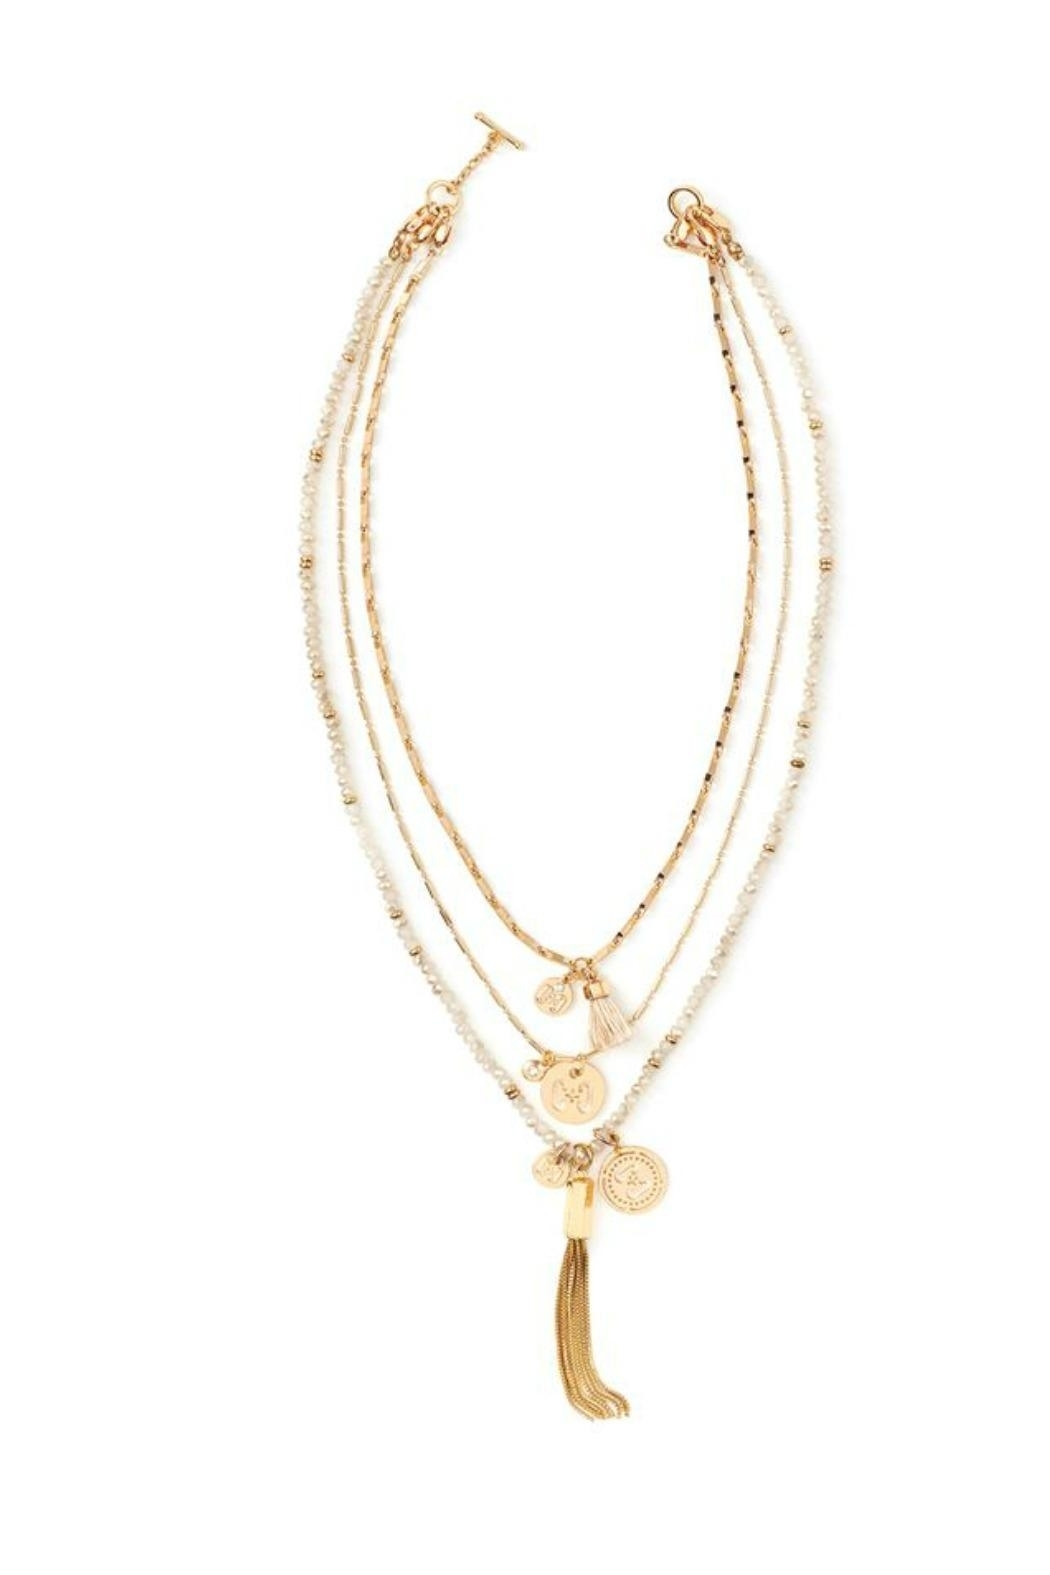 Coco + Carmen Signature Necklaces - Front Cropped Image